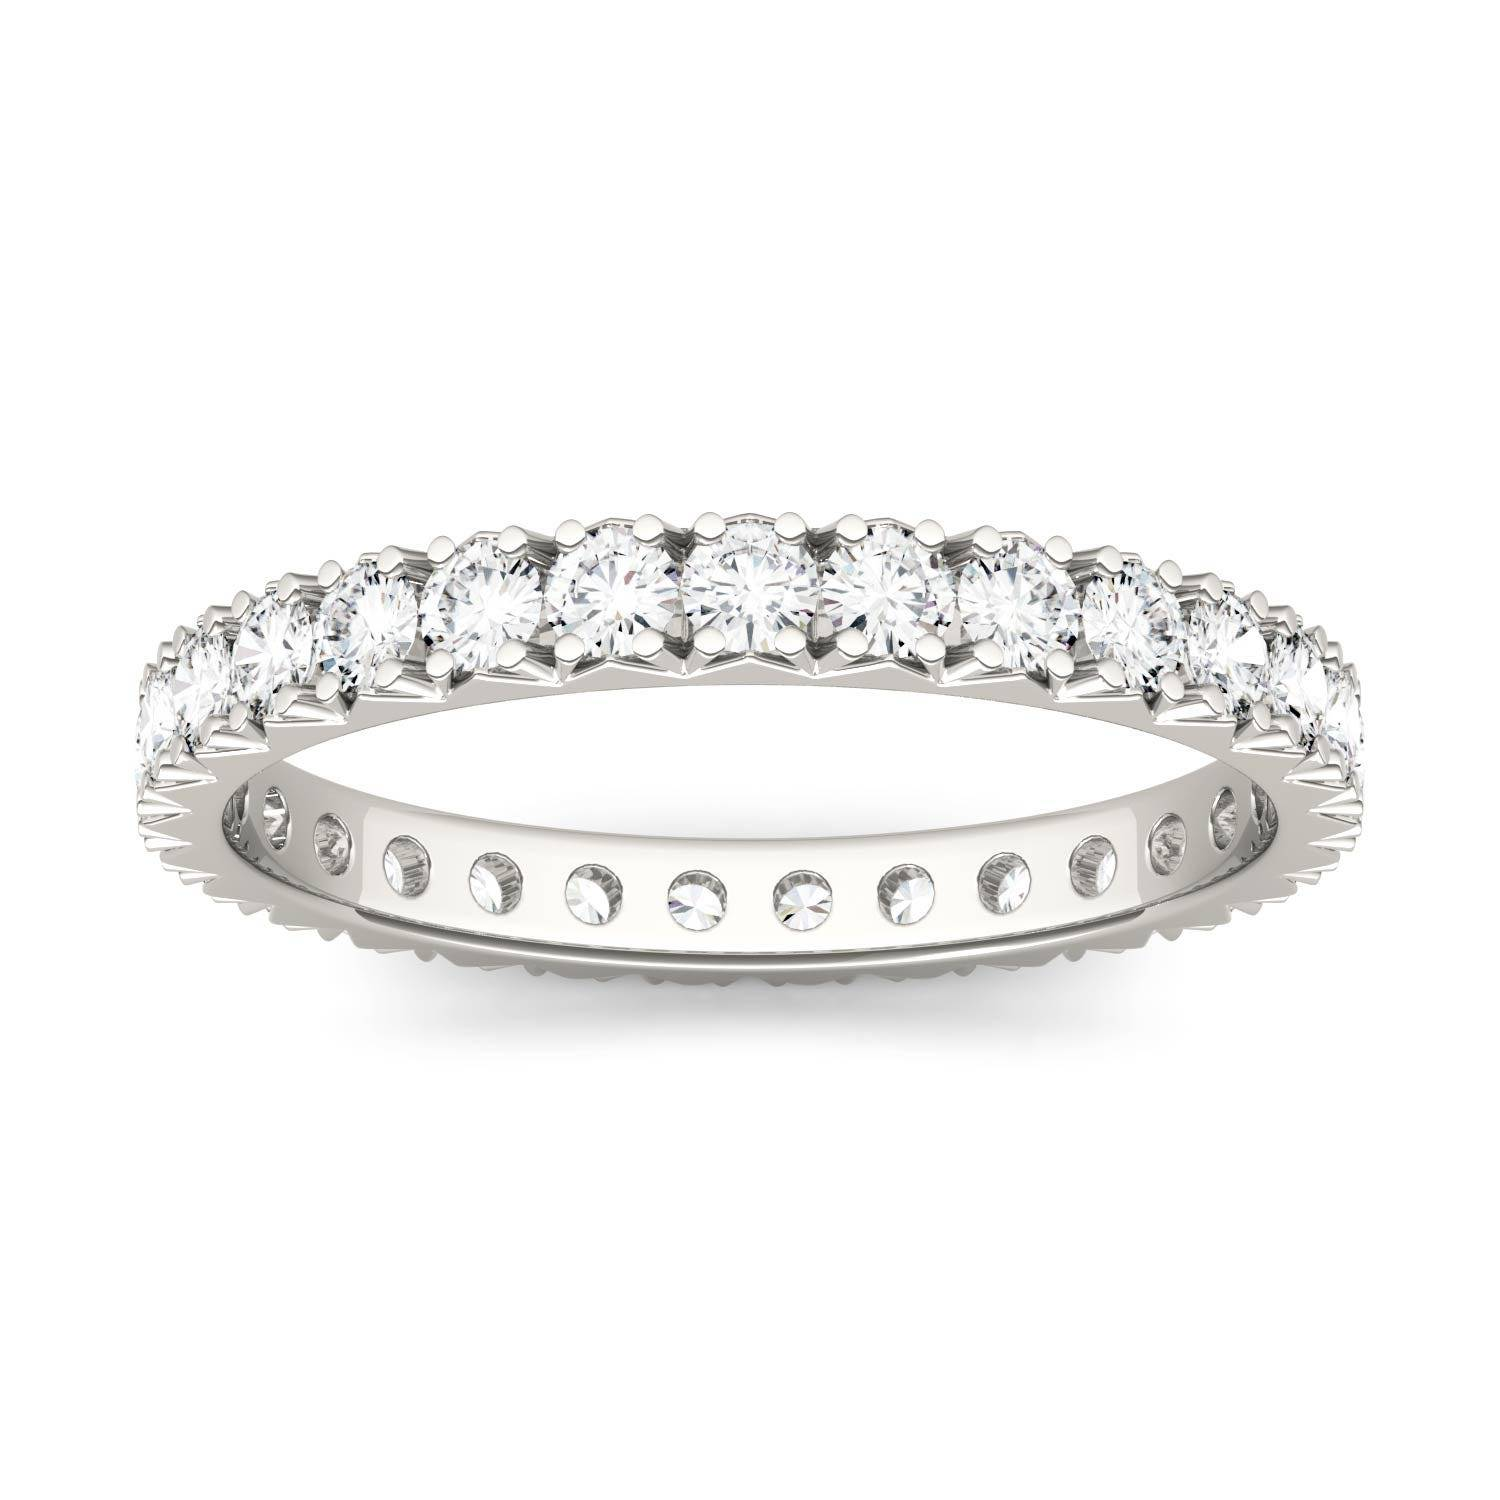 Charles & Colvard Eternity Prong Set Band Wedding Ring in 14K White Gold, Size: 5, 1.00CTW Round Forever One Moissanite Accent Stones Charles & Colvard  - White Gold - Size: 5